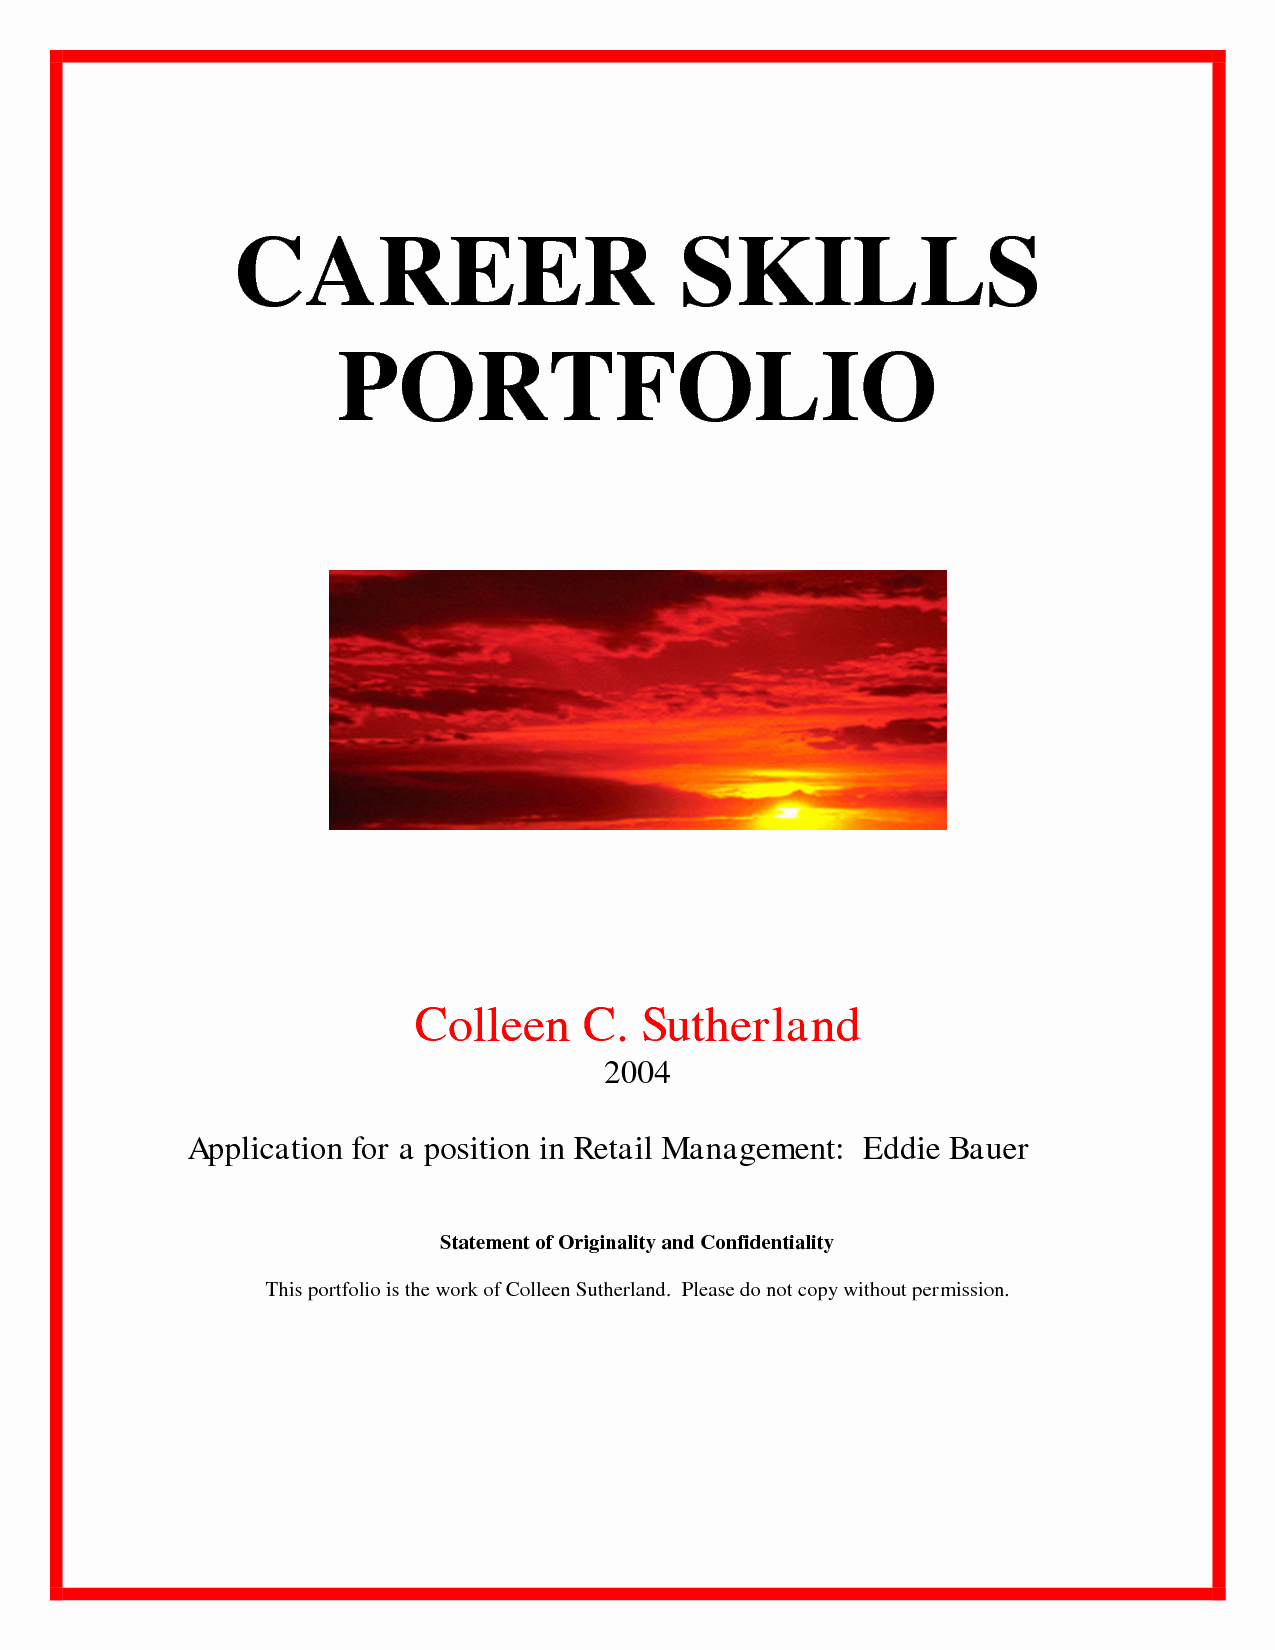 Cover Page for Portfolio Template Elegant Best S Of Portfolio Cover Page Examples Career